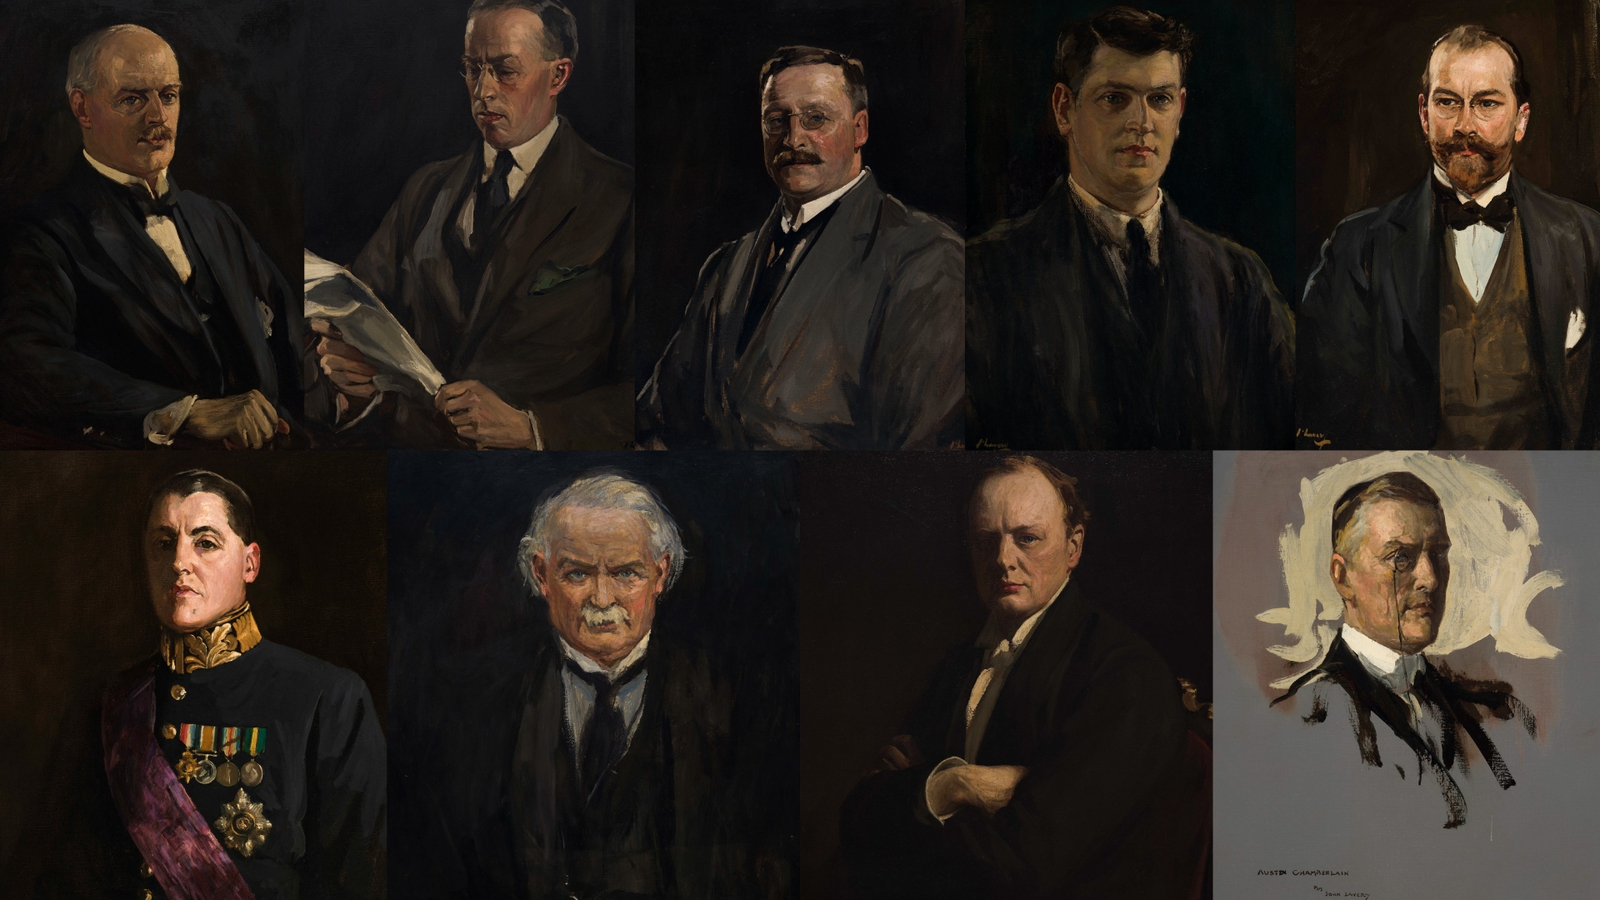 Image - One of the leading painters of the era, John Lavery, had no trouble persuading the negotiators to sit for their portraits in his London studio. These portraits have not been seen together for almost a century